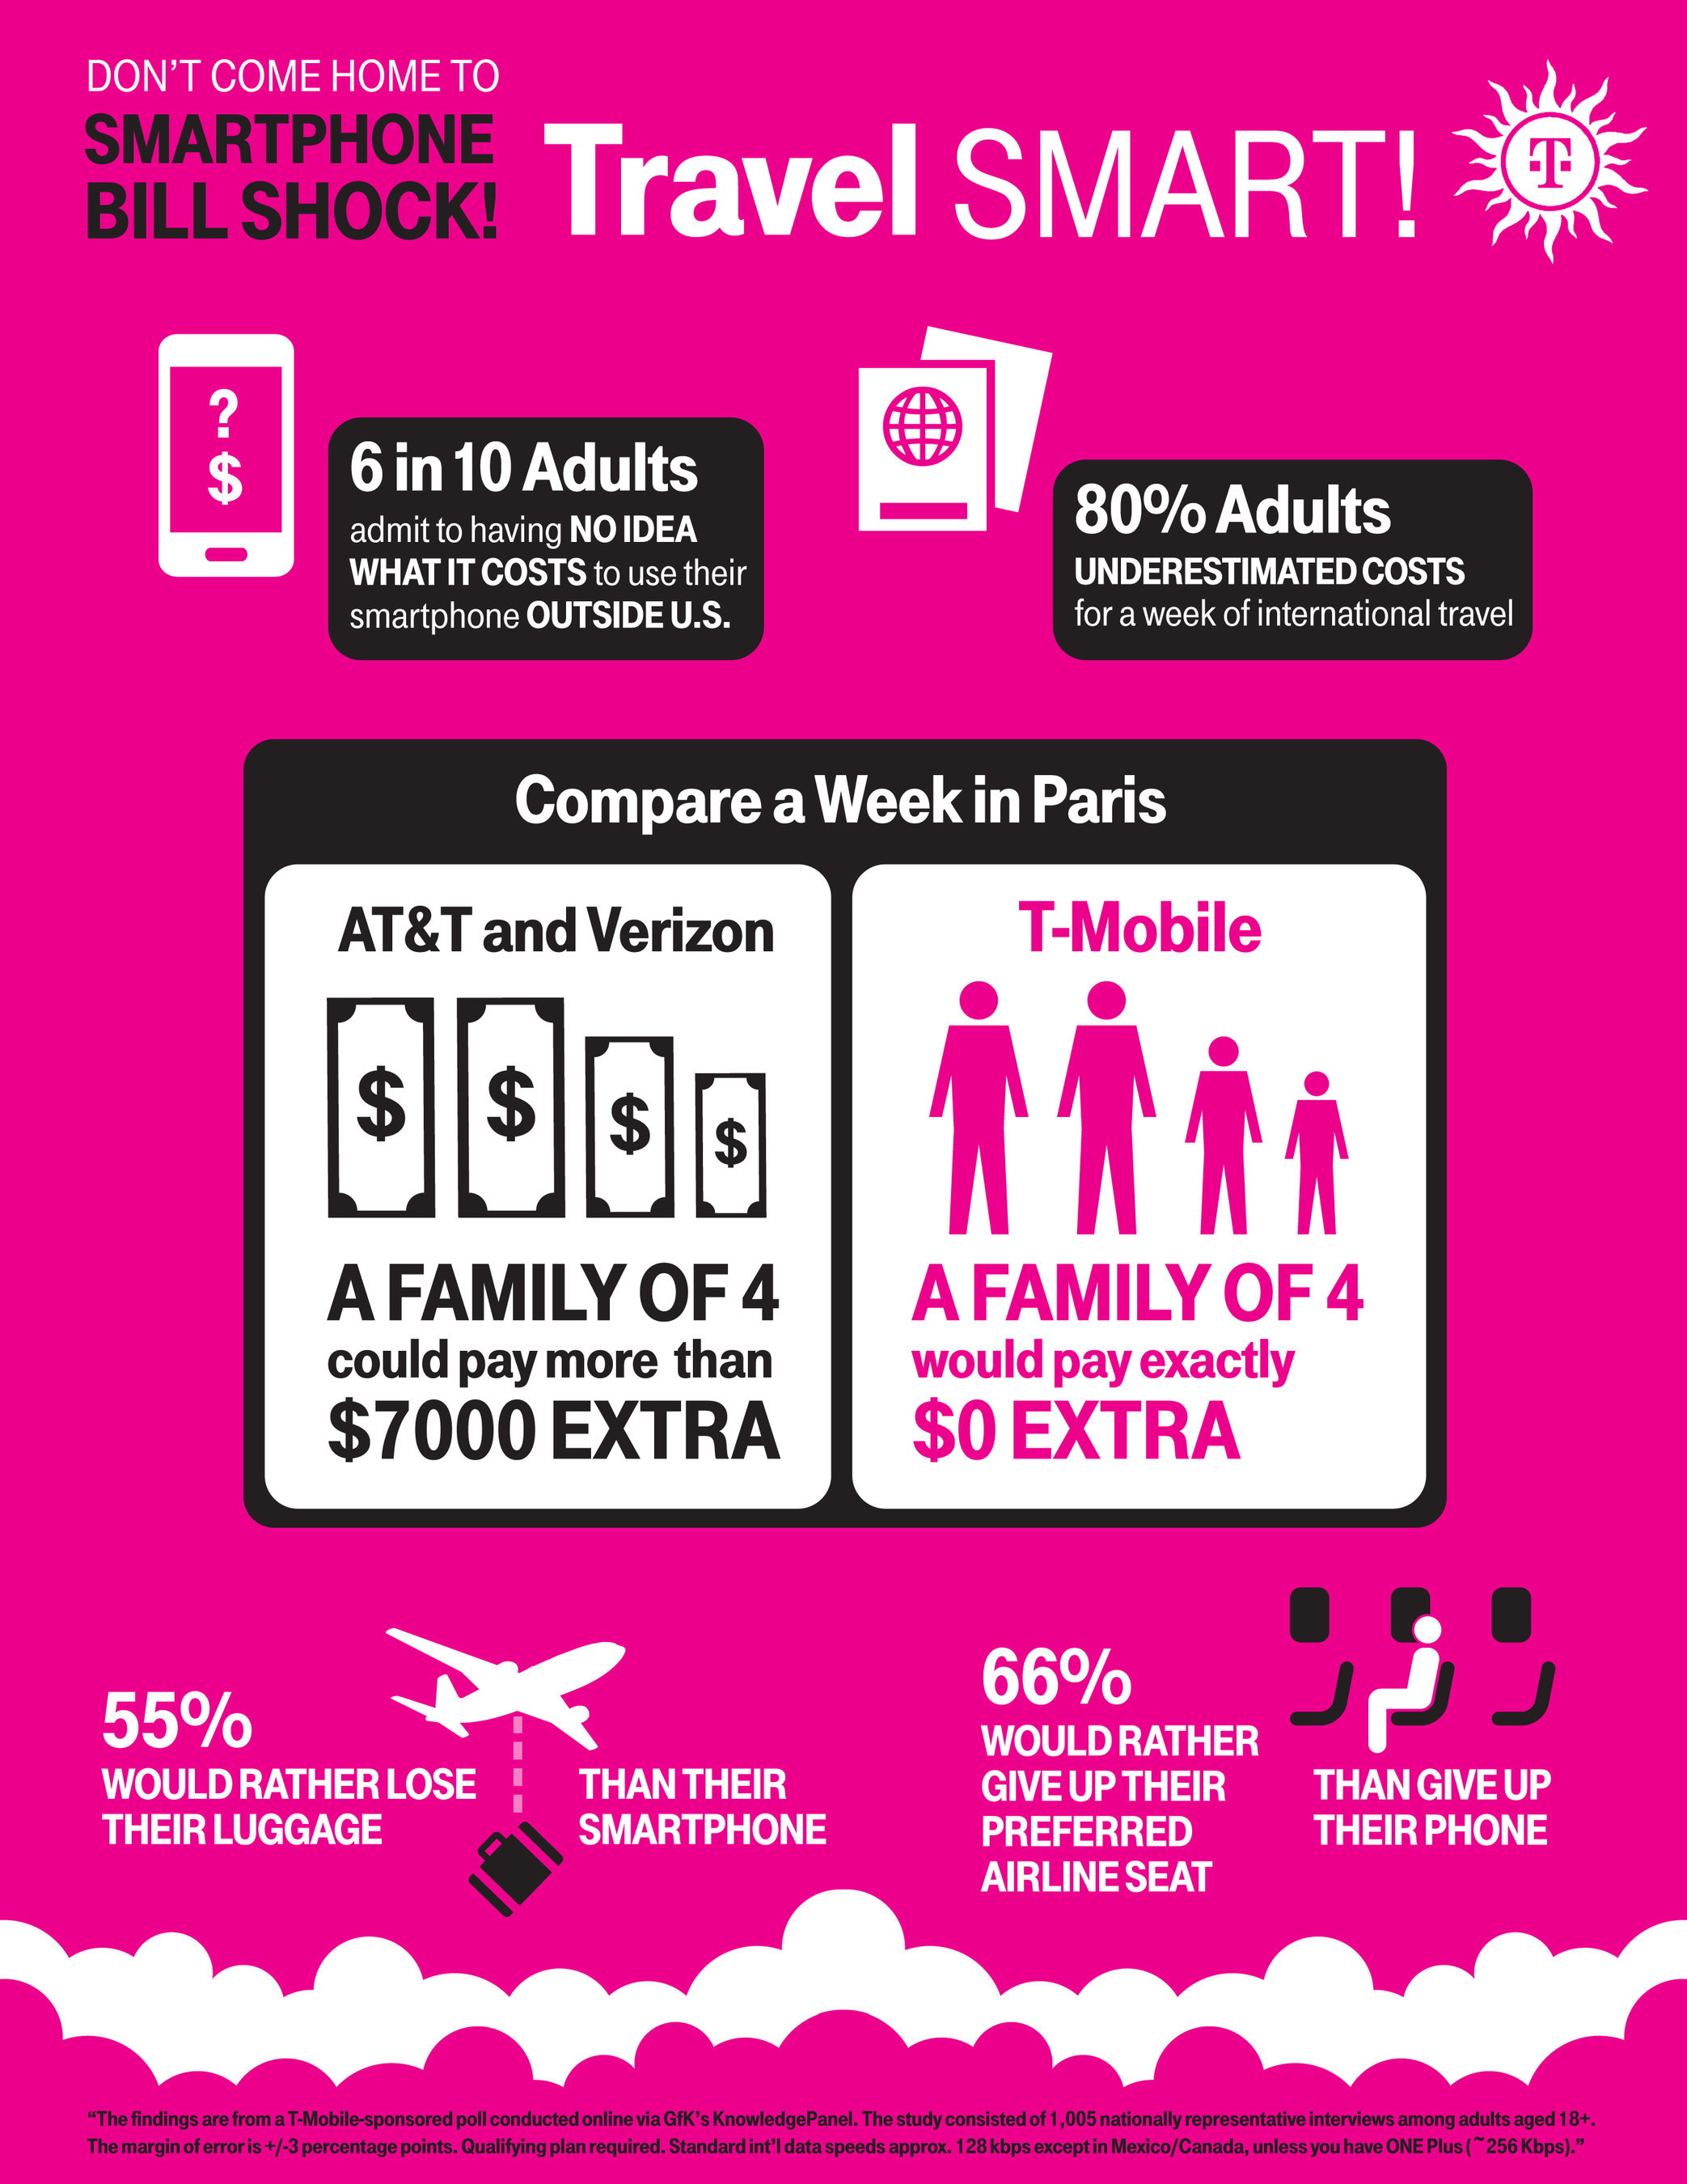 T-Mobile Travel Study Reveals Up to 80% of Carrier Customers Underestimate International Roaming Costs